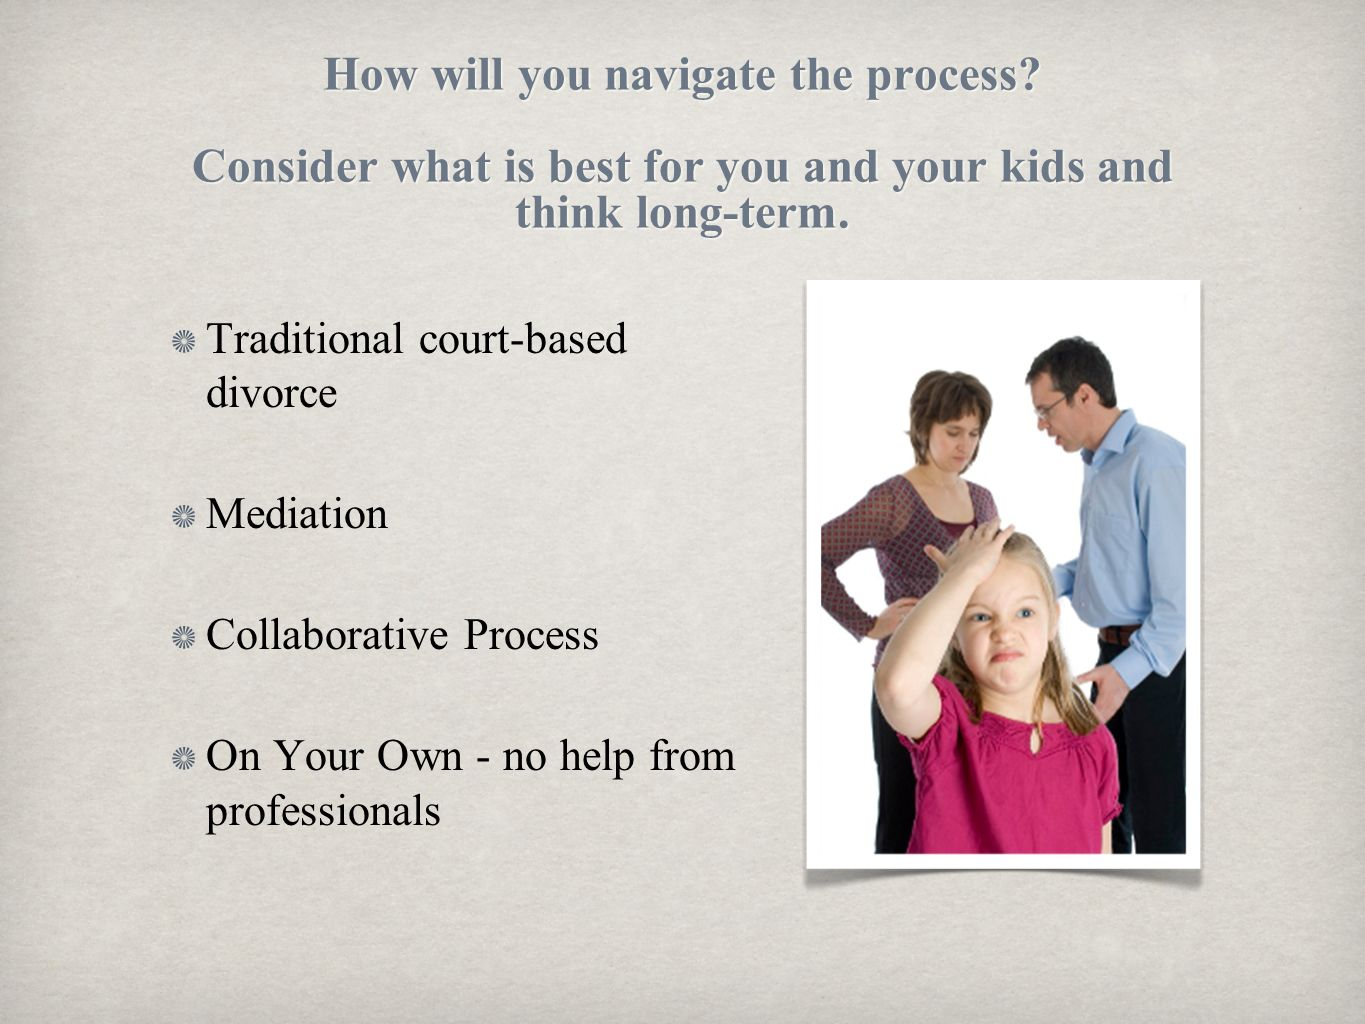 How will you navigate the process